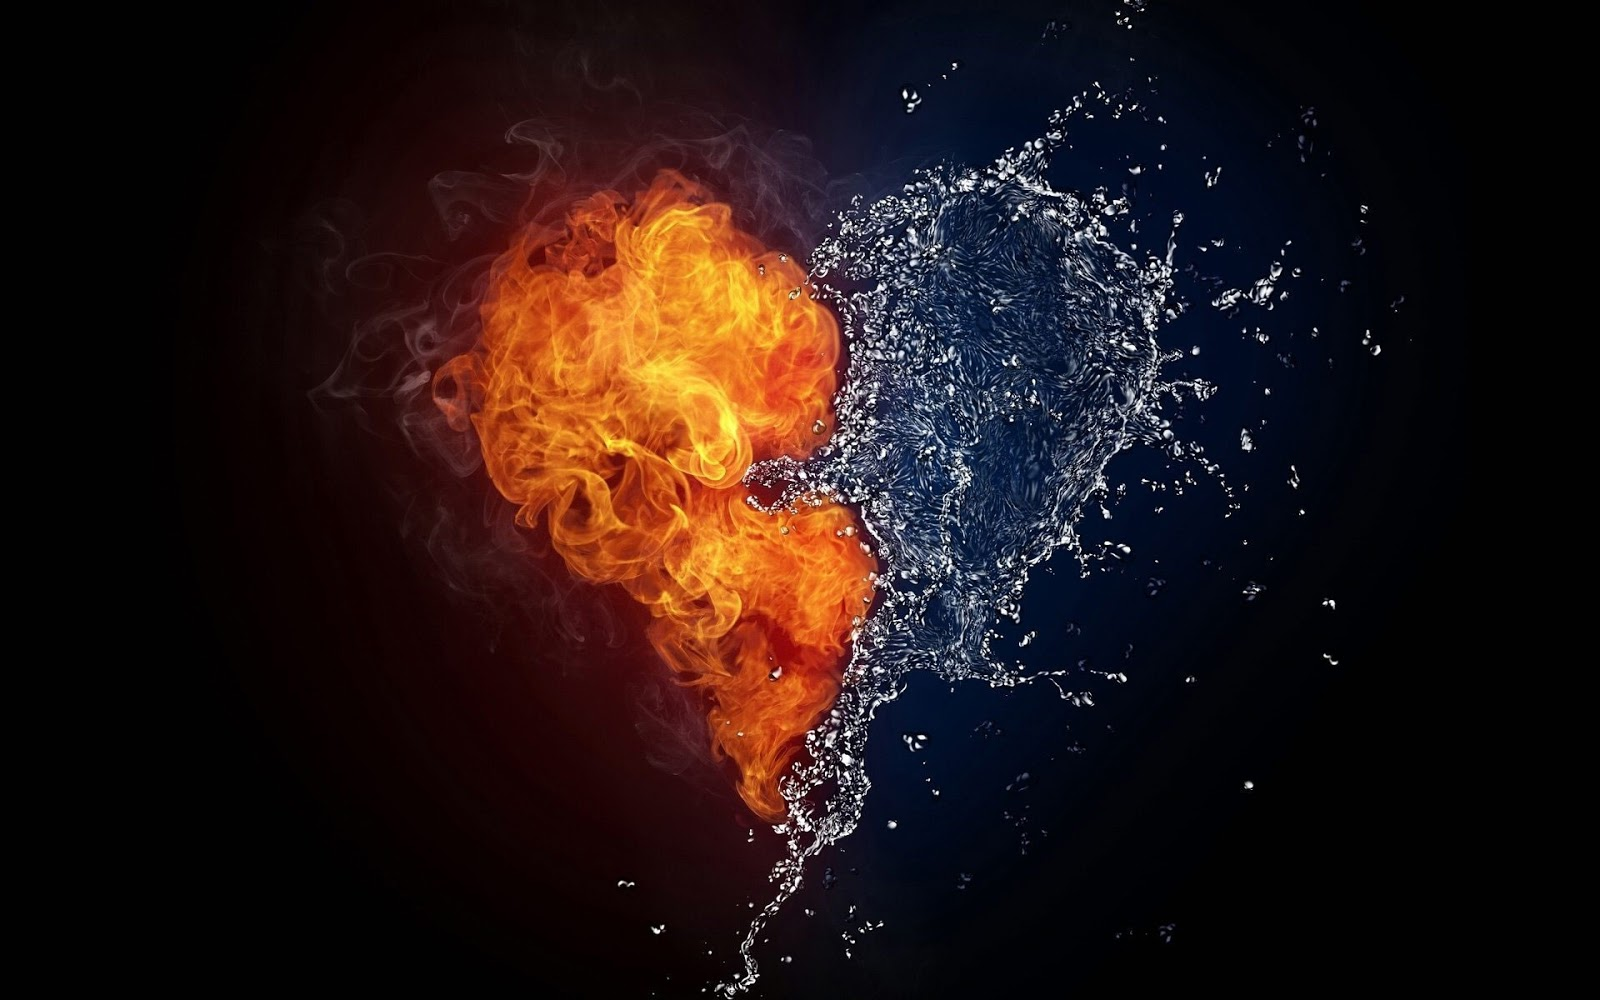 fire-and-water-love